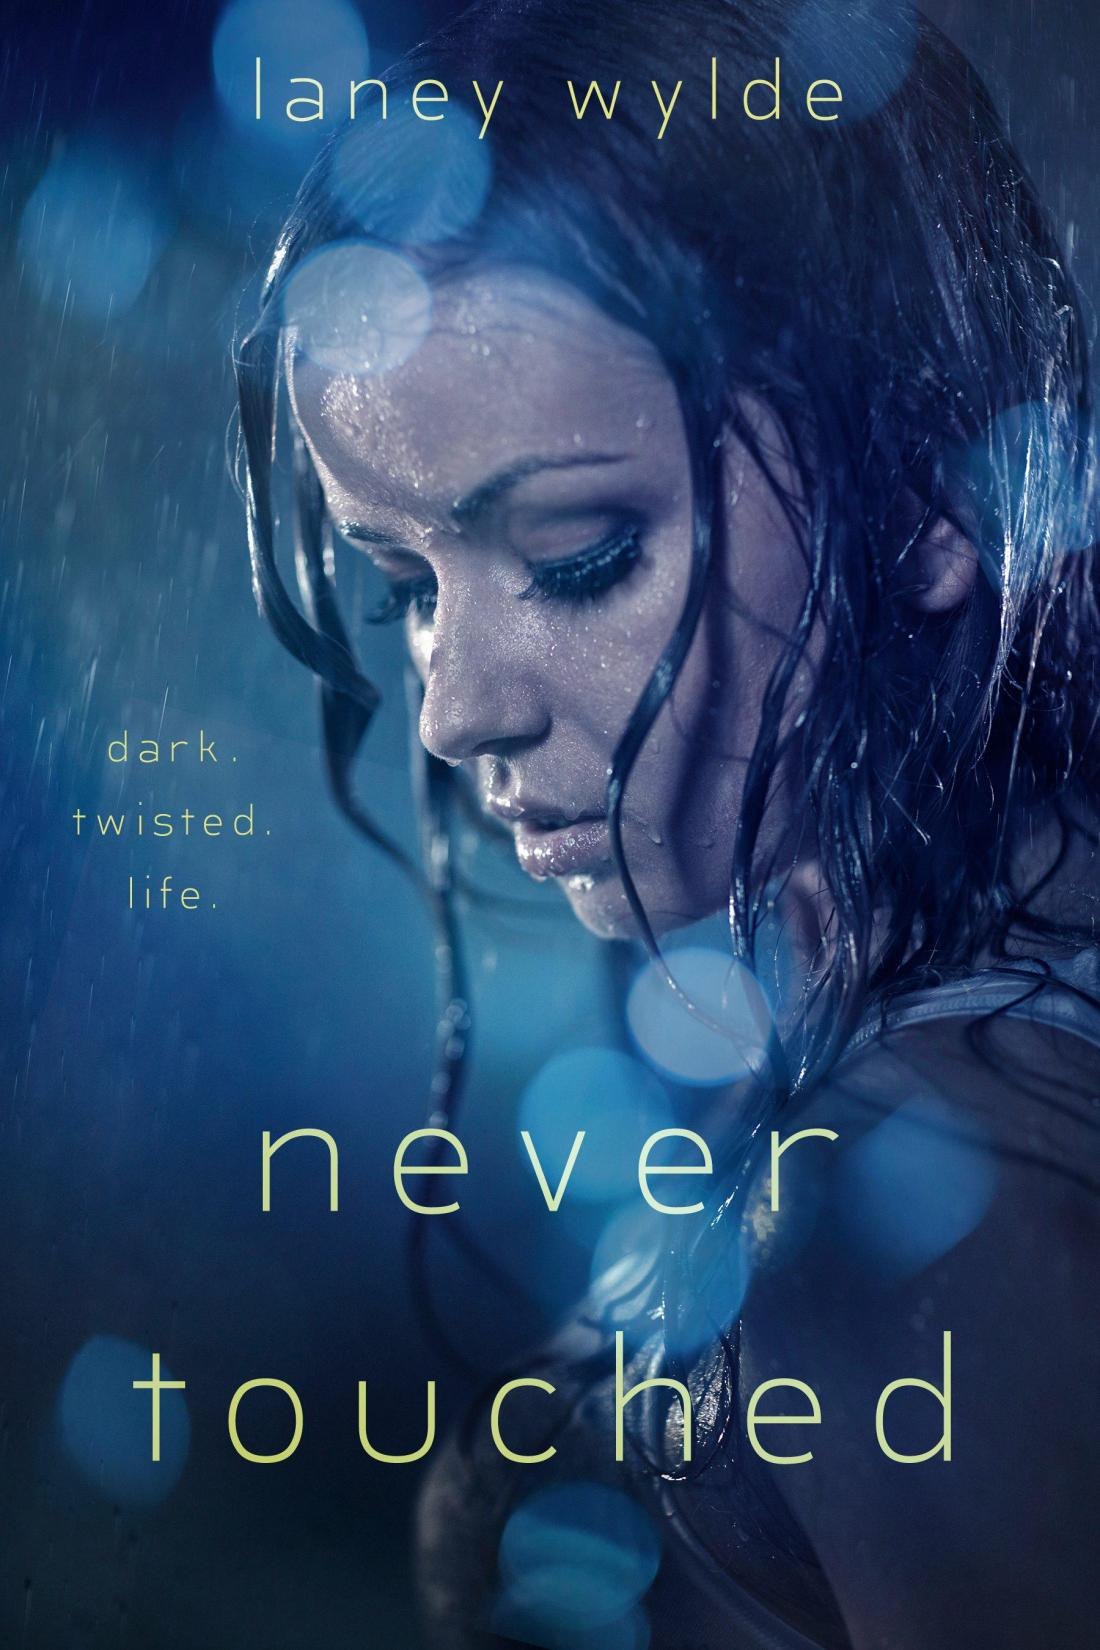 NeverTouched